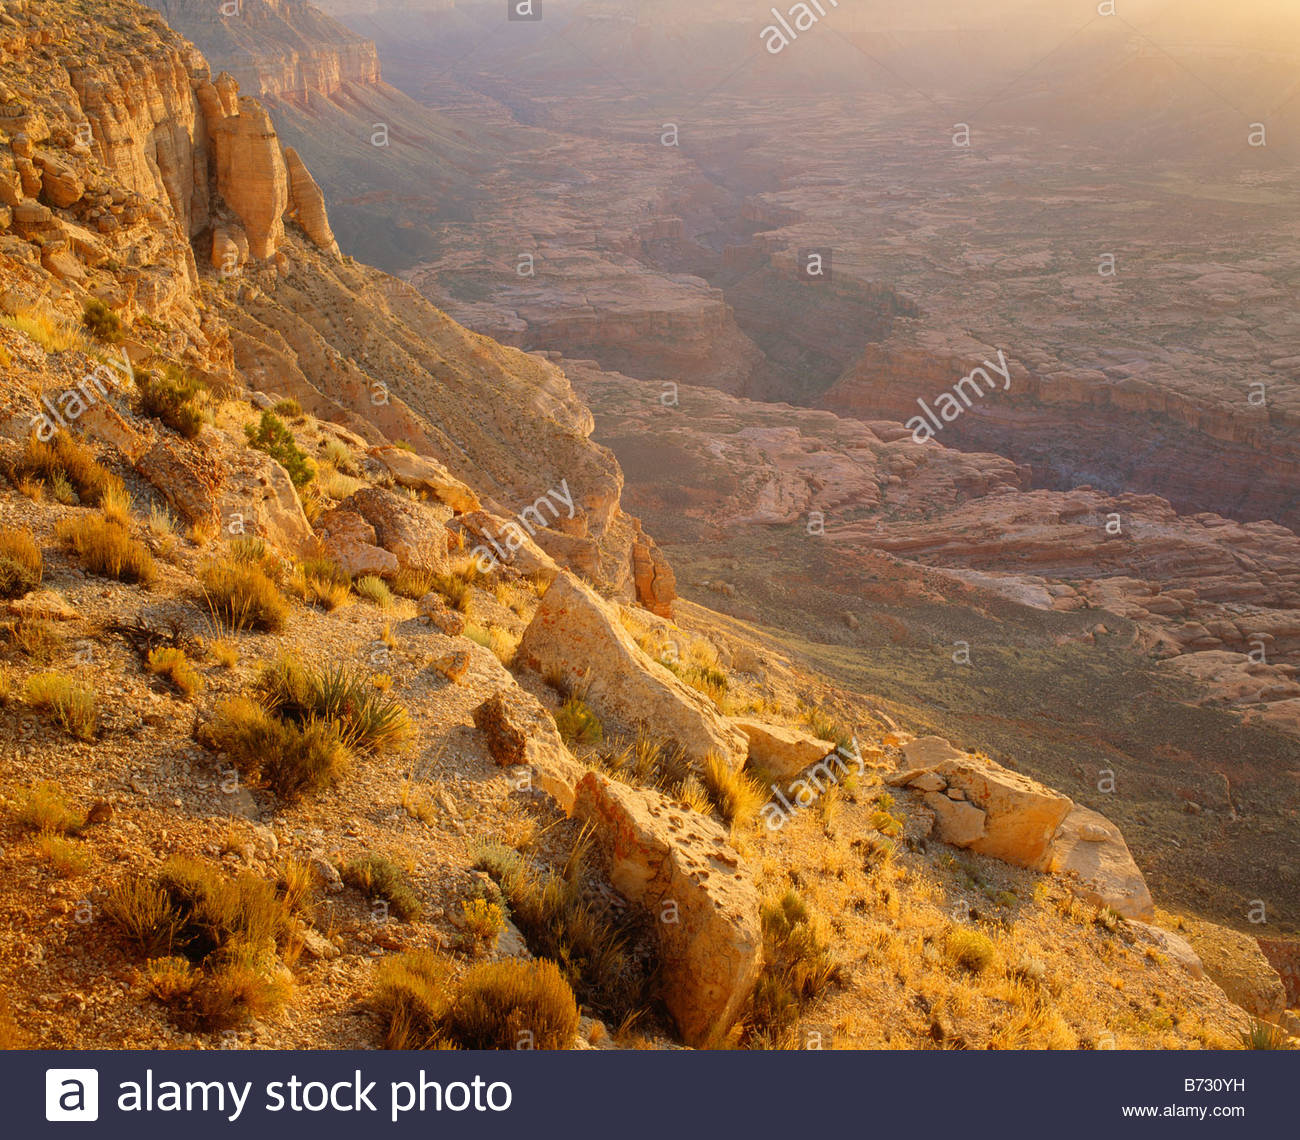 Jumpup Canyon at sunrise Kanab Creek Wilderness Area The Arizona Strip BLM Lands Kaibab National Forest Arizona - Stock Image